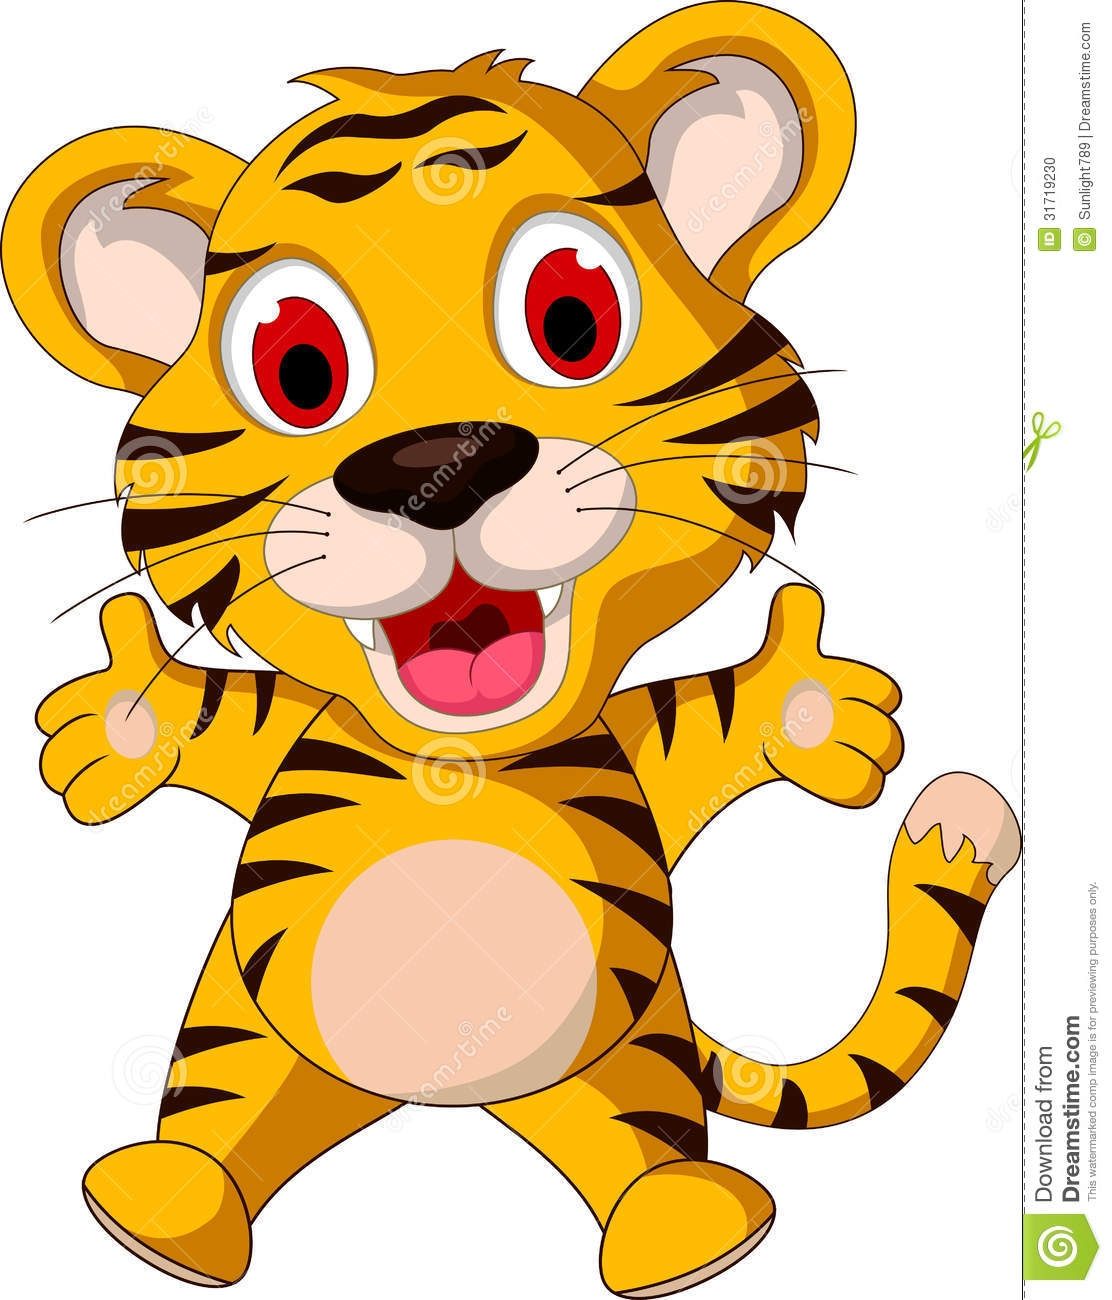 Tiger mother baby clipart.